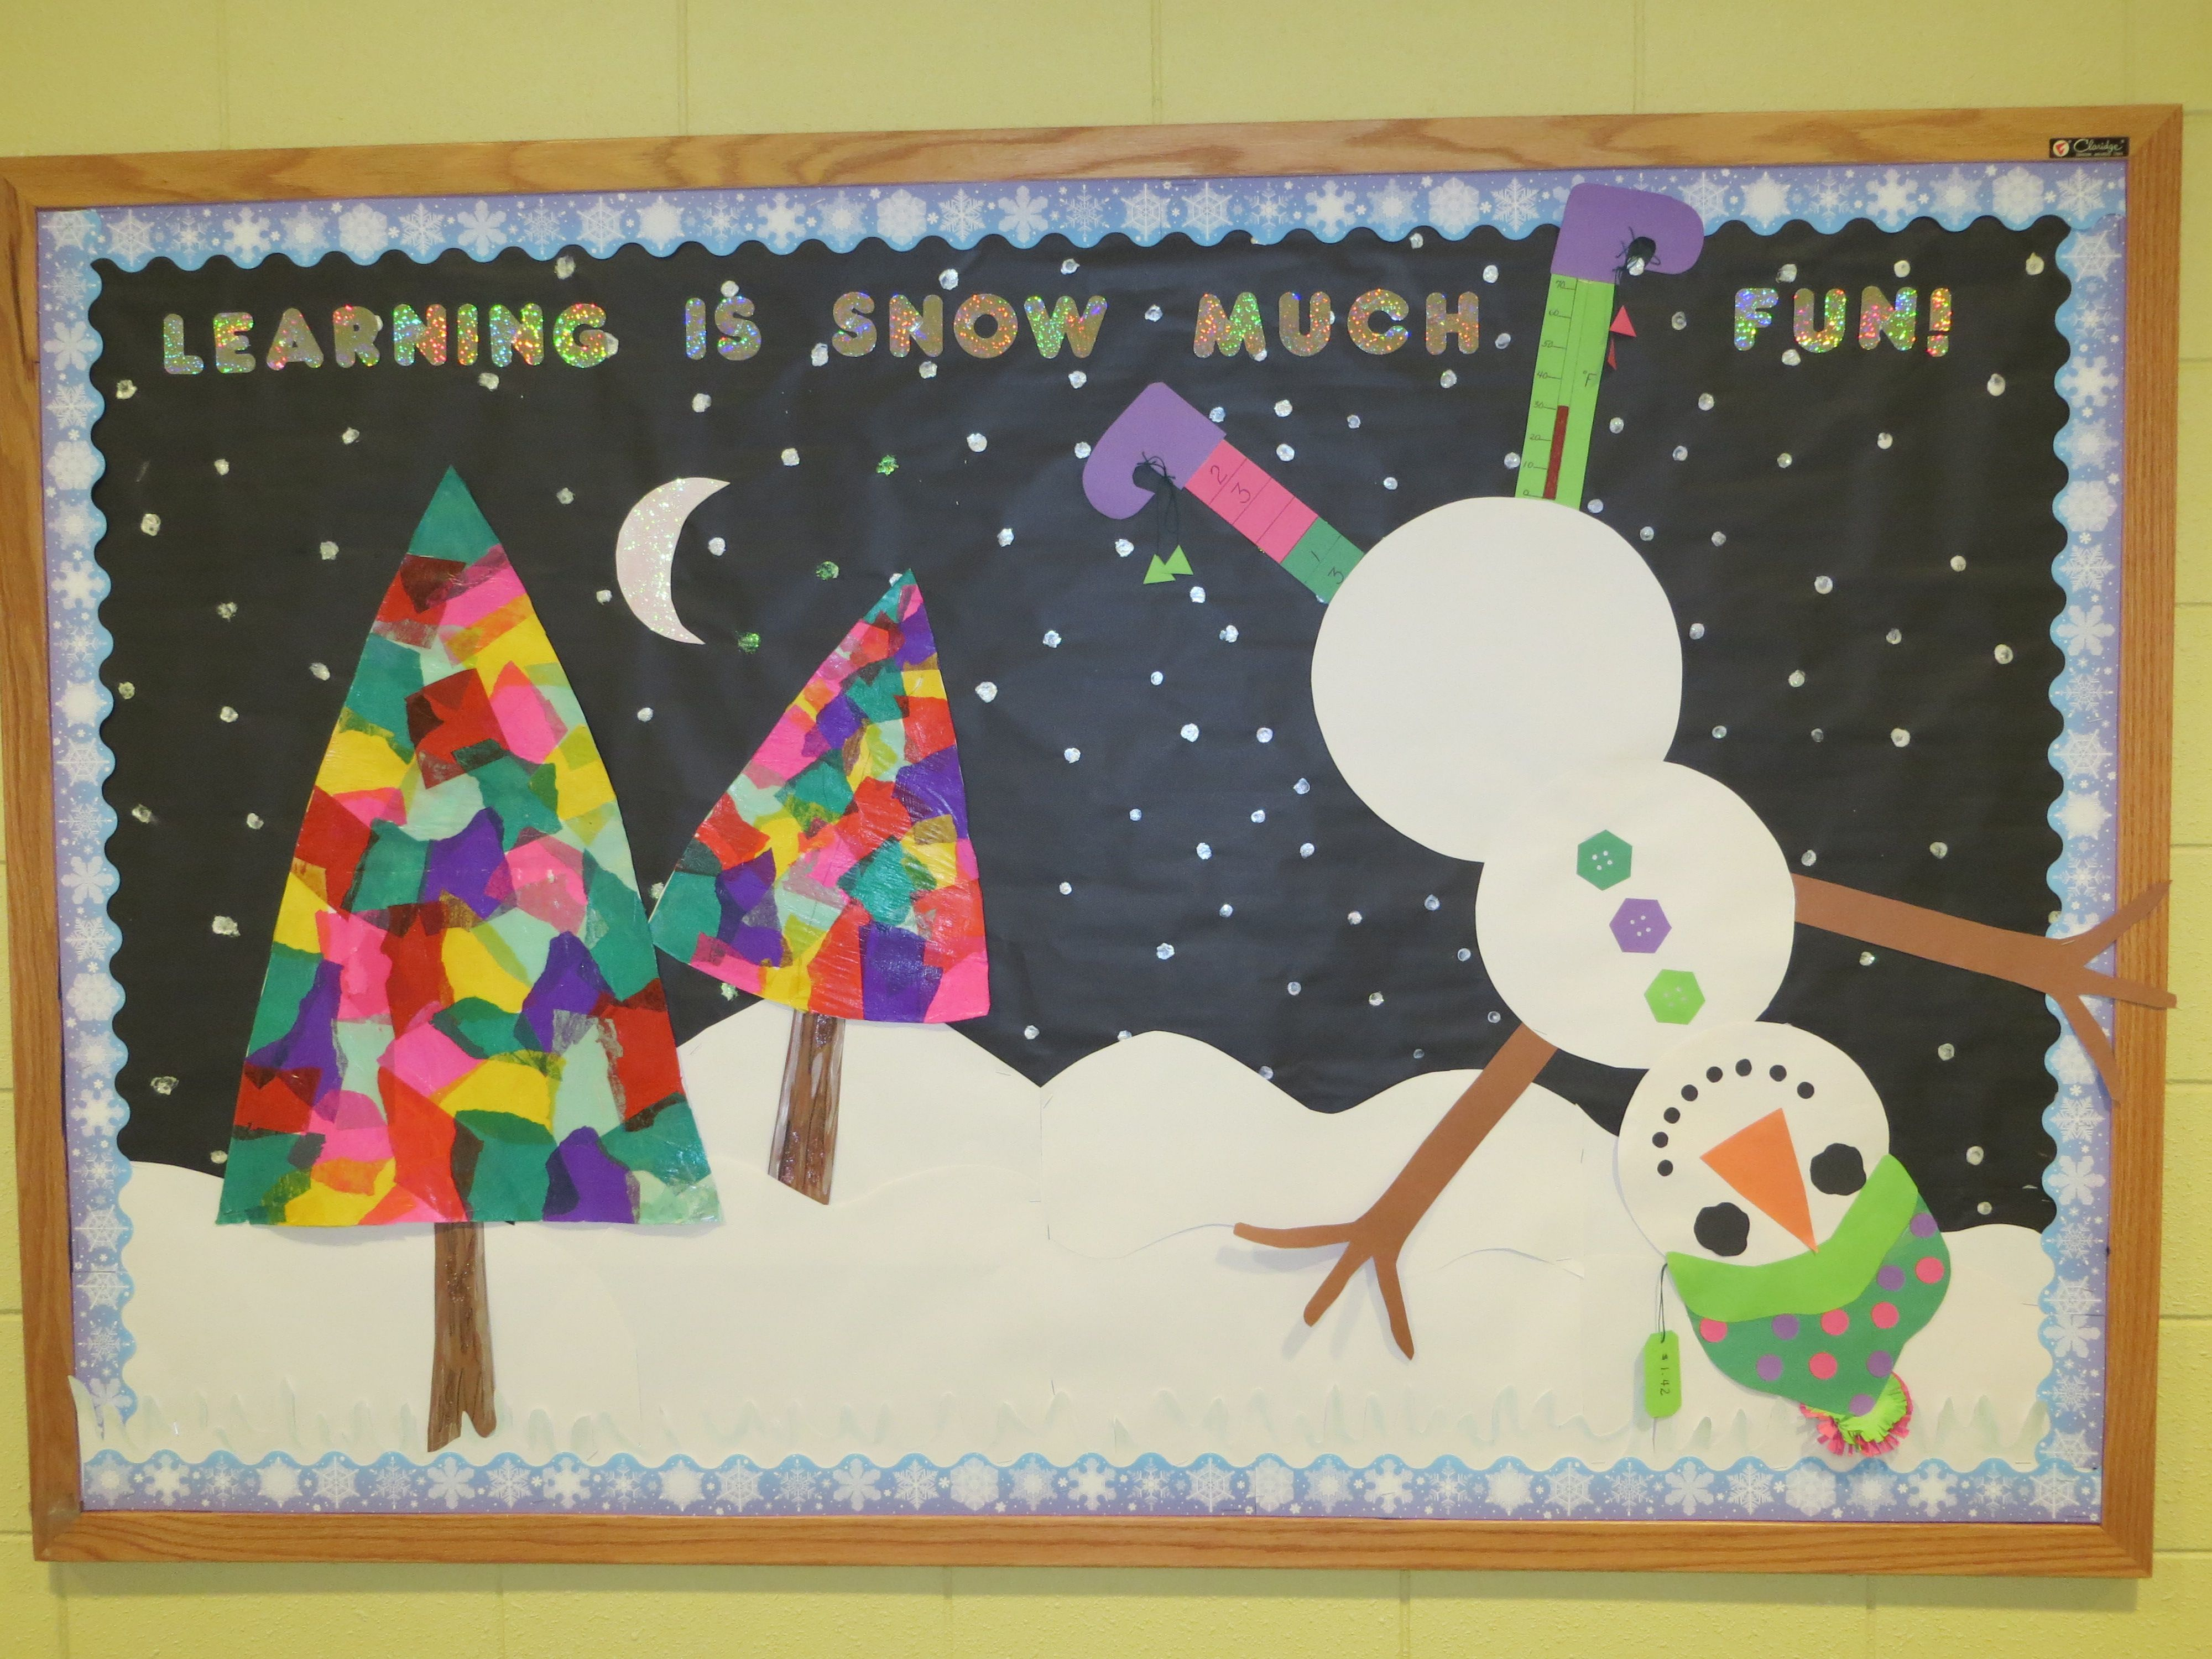 Winter Bulletin Board For 2nd Grade With Math Skills On